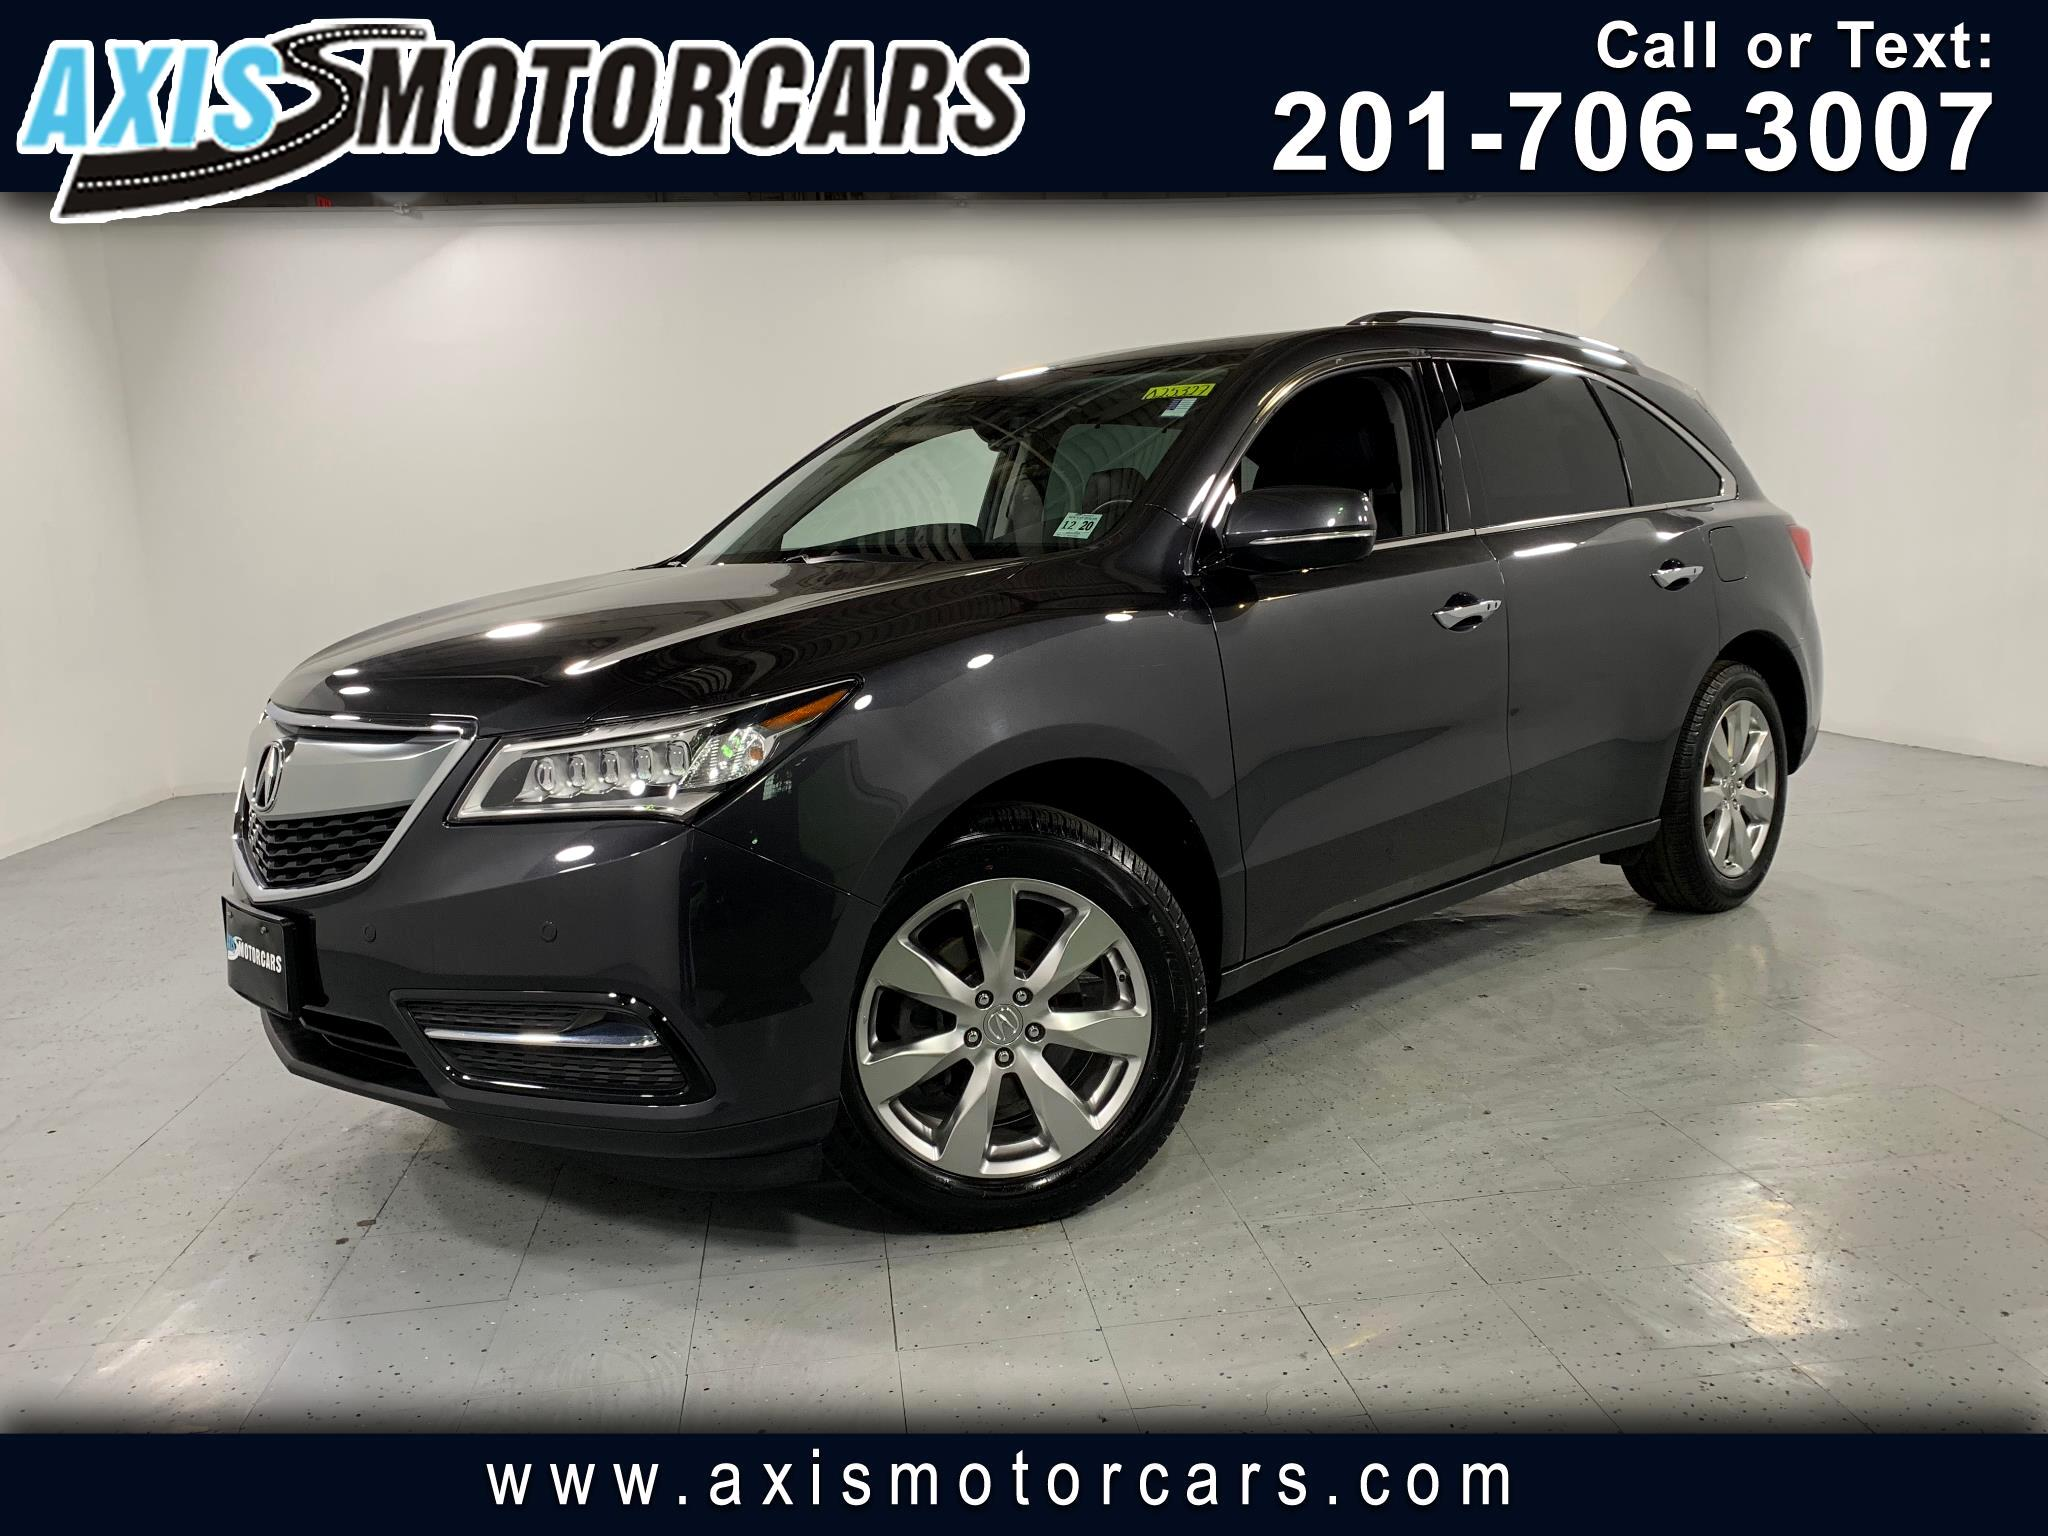 2016 Acura MDX Advance w/Navigation Bakup Camera Sunroof